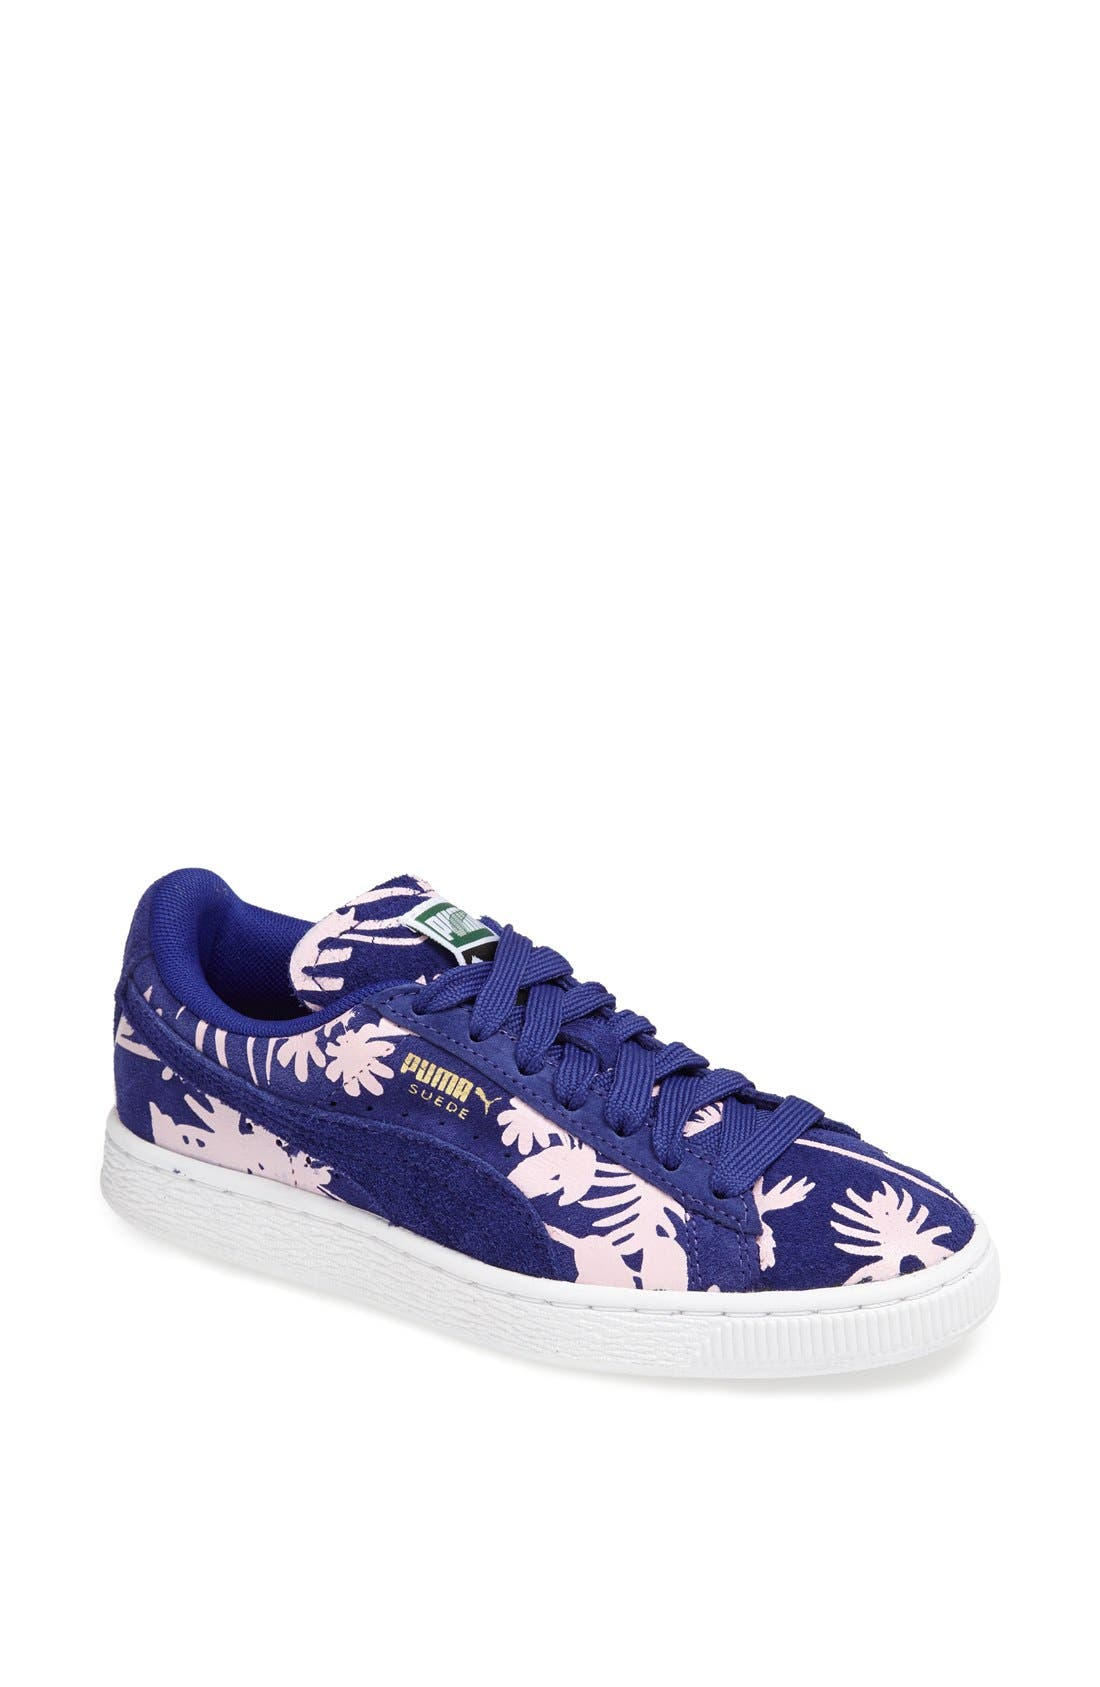 Alternate Image 1 Selected - PUMA 'Suede Classic Tropicalia' Sneaker (Women)